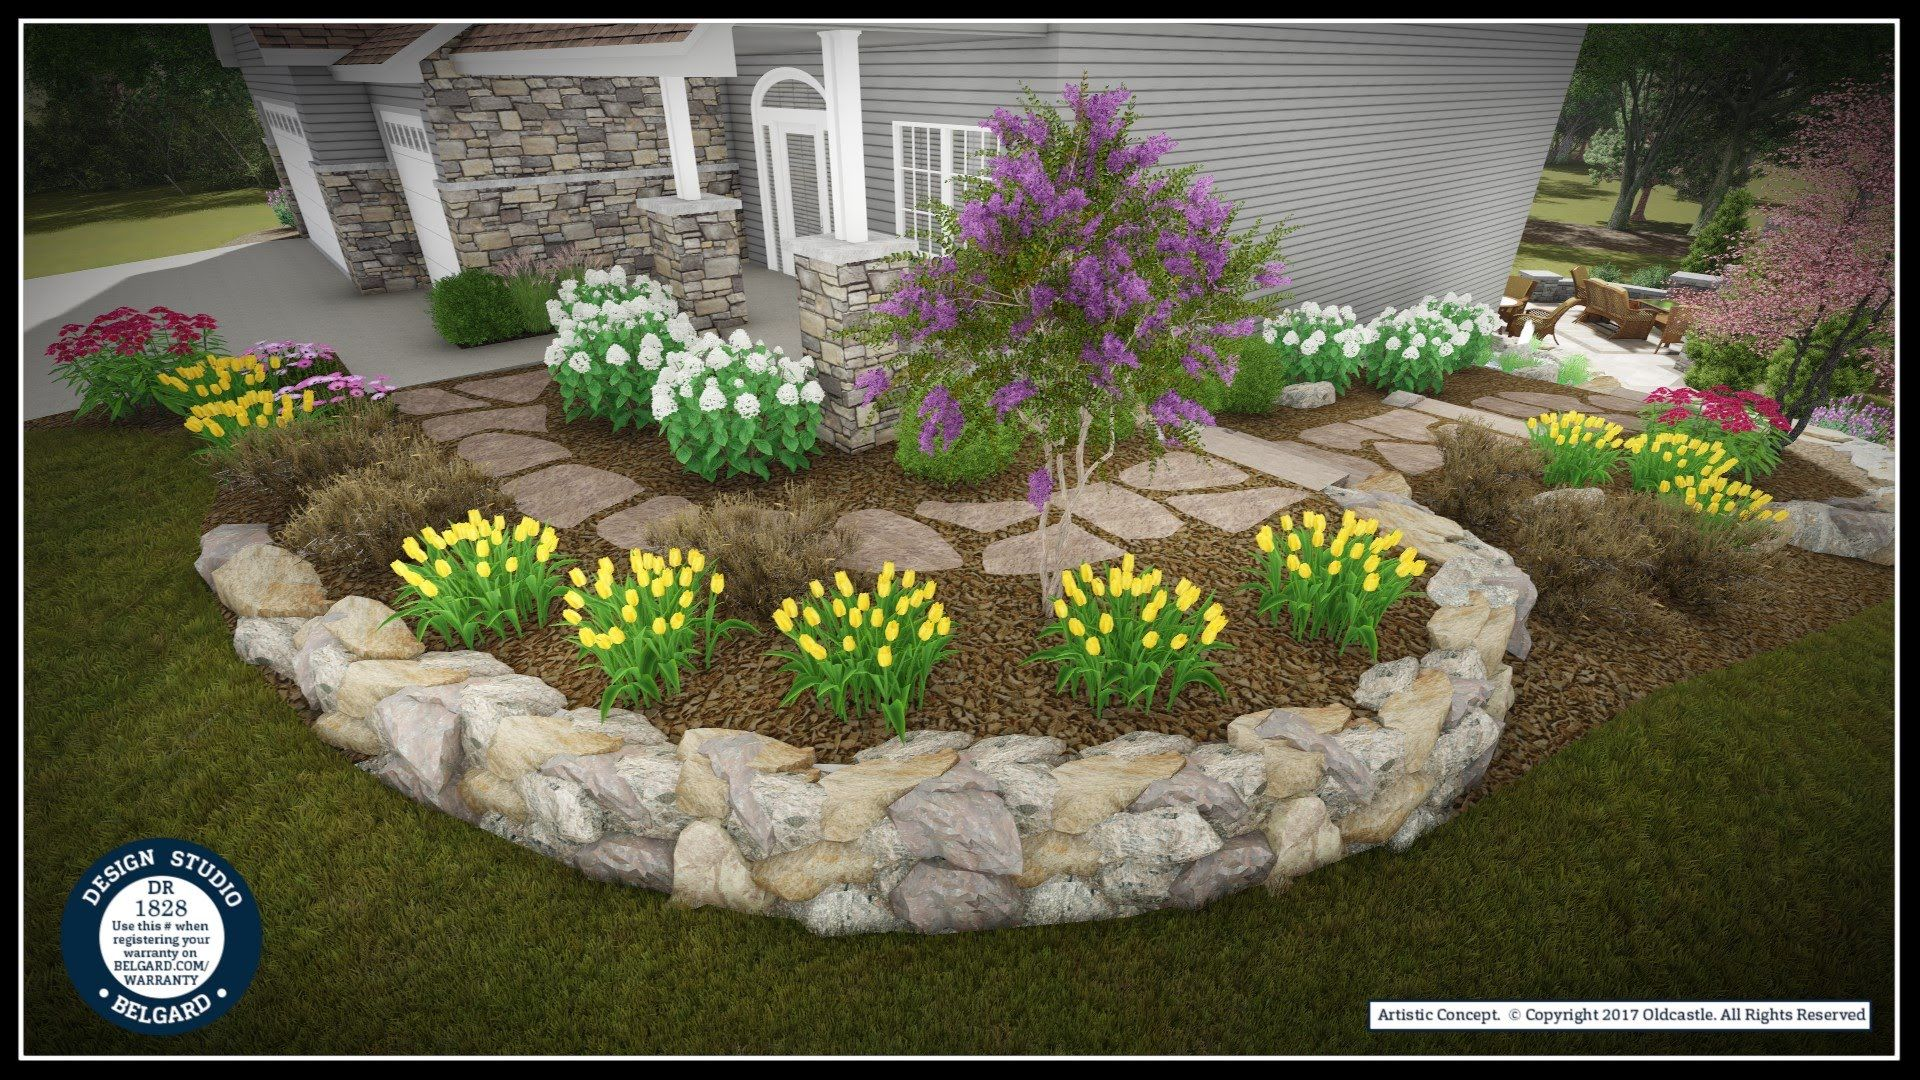 Pin by NS Landscapes on NS Landscapes - Planting Beds ...